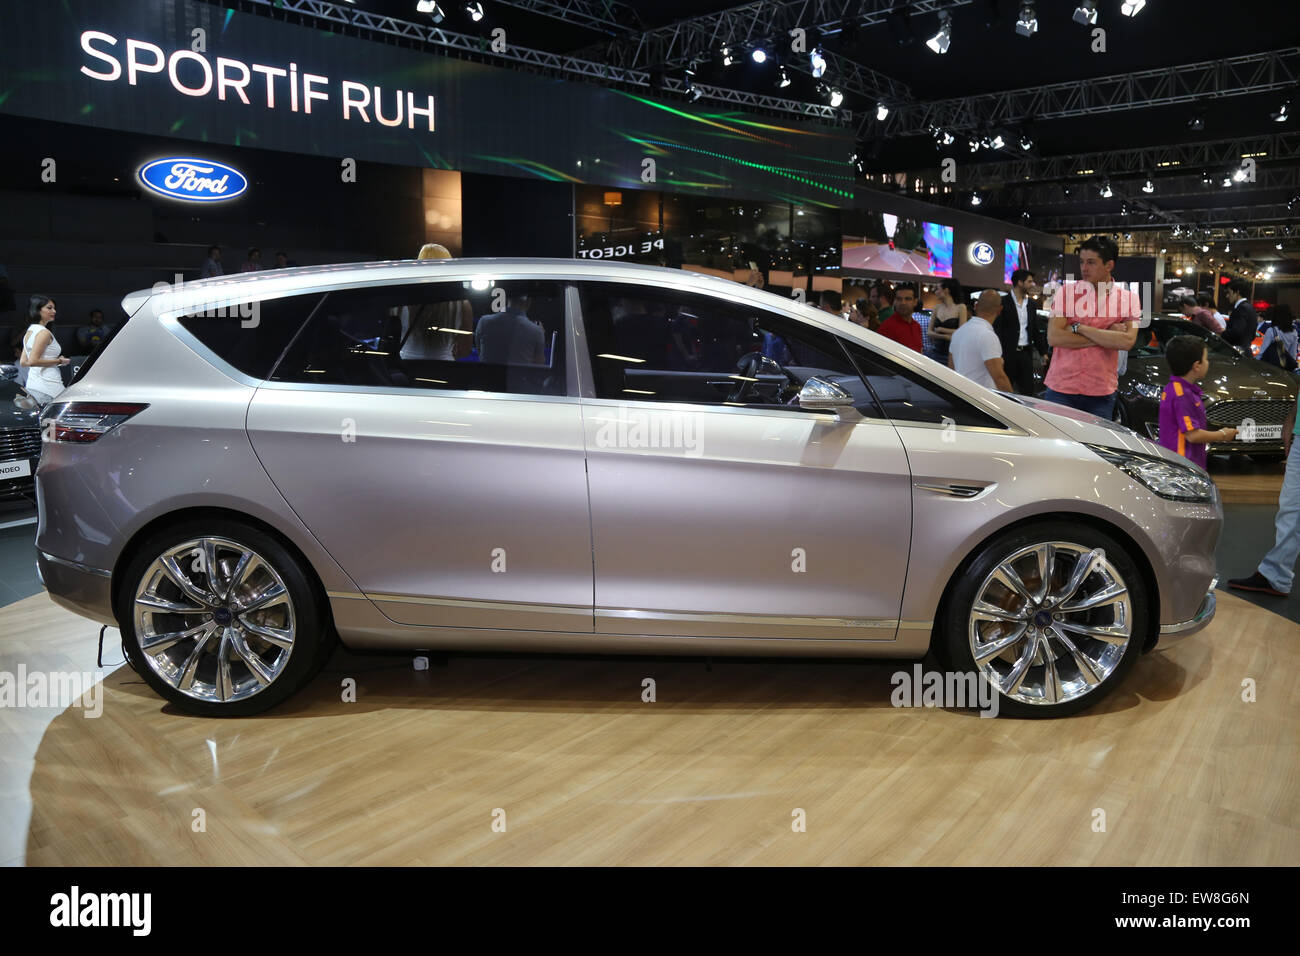 Ford S-Max Vignale Concept Istanbul Autoshow 2015 - Stock Image